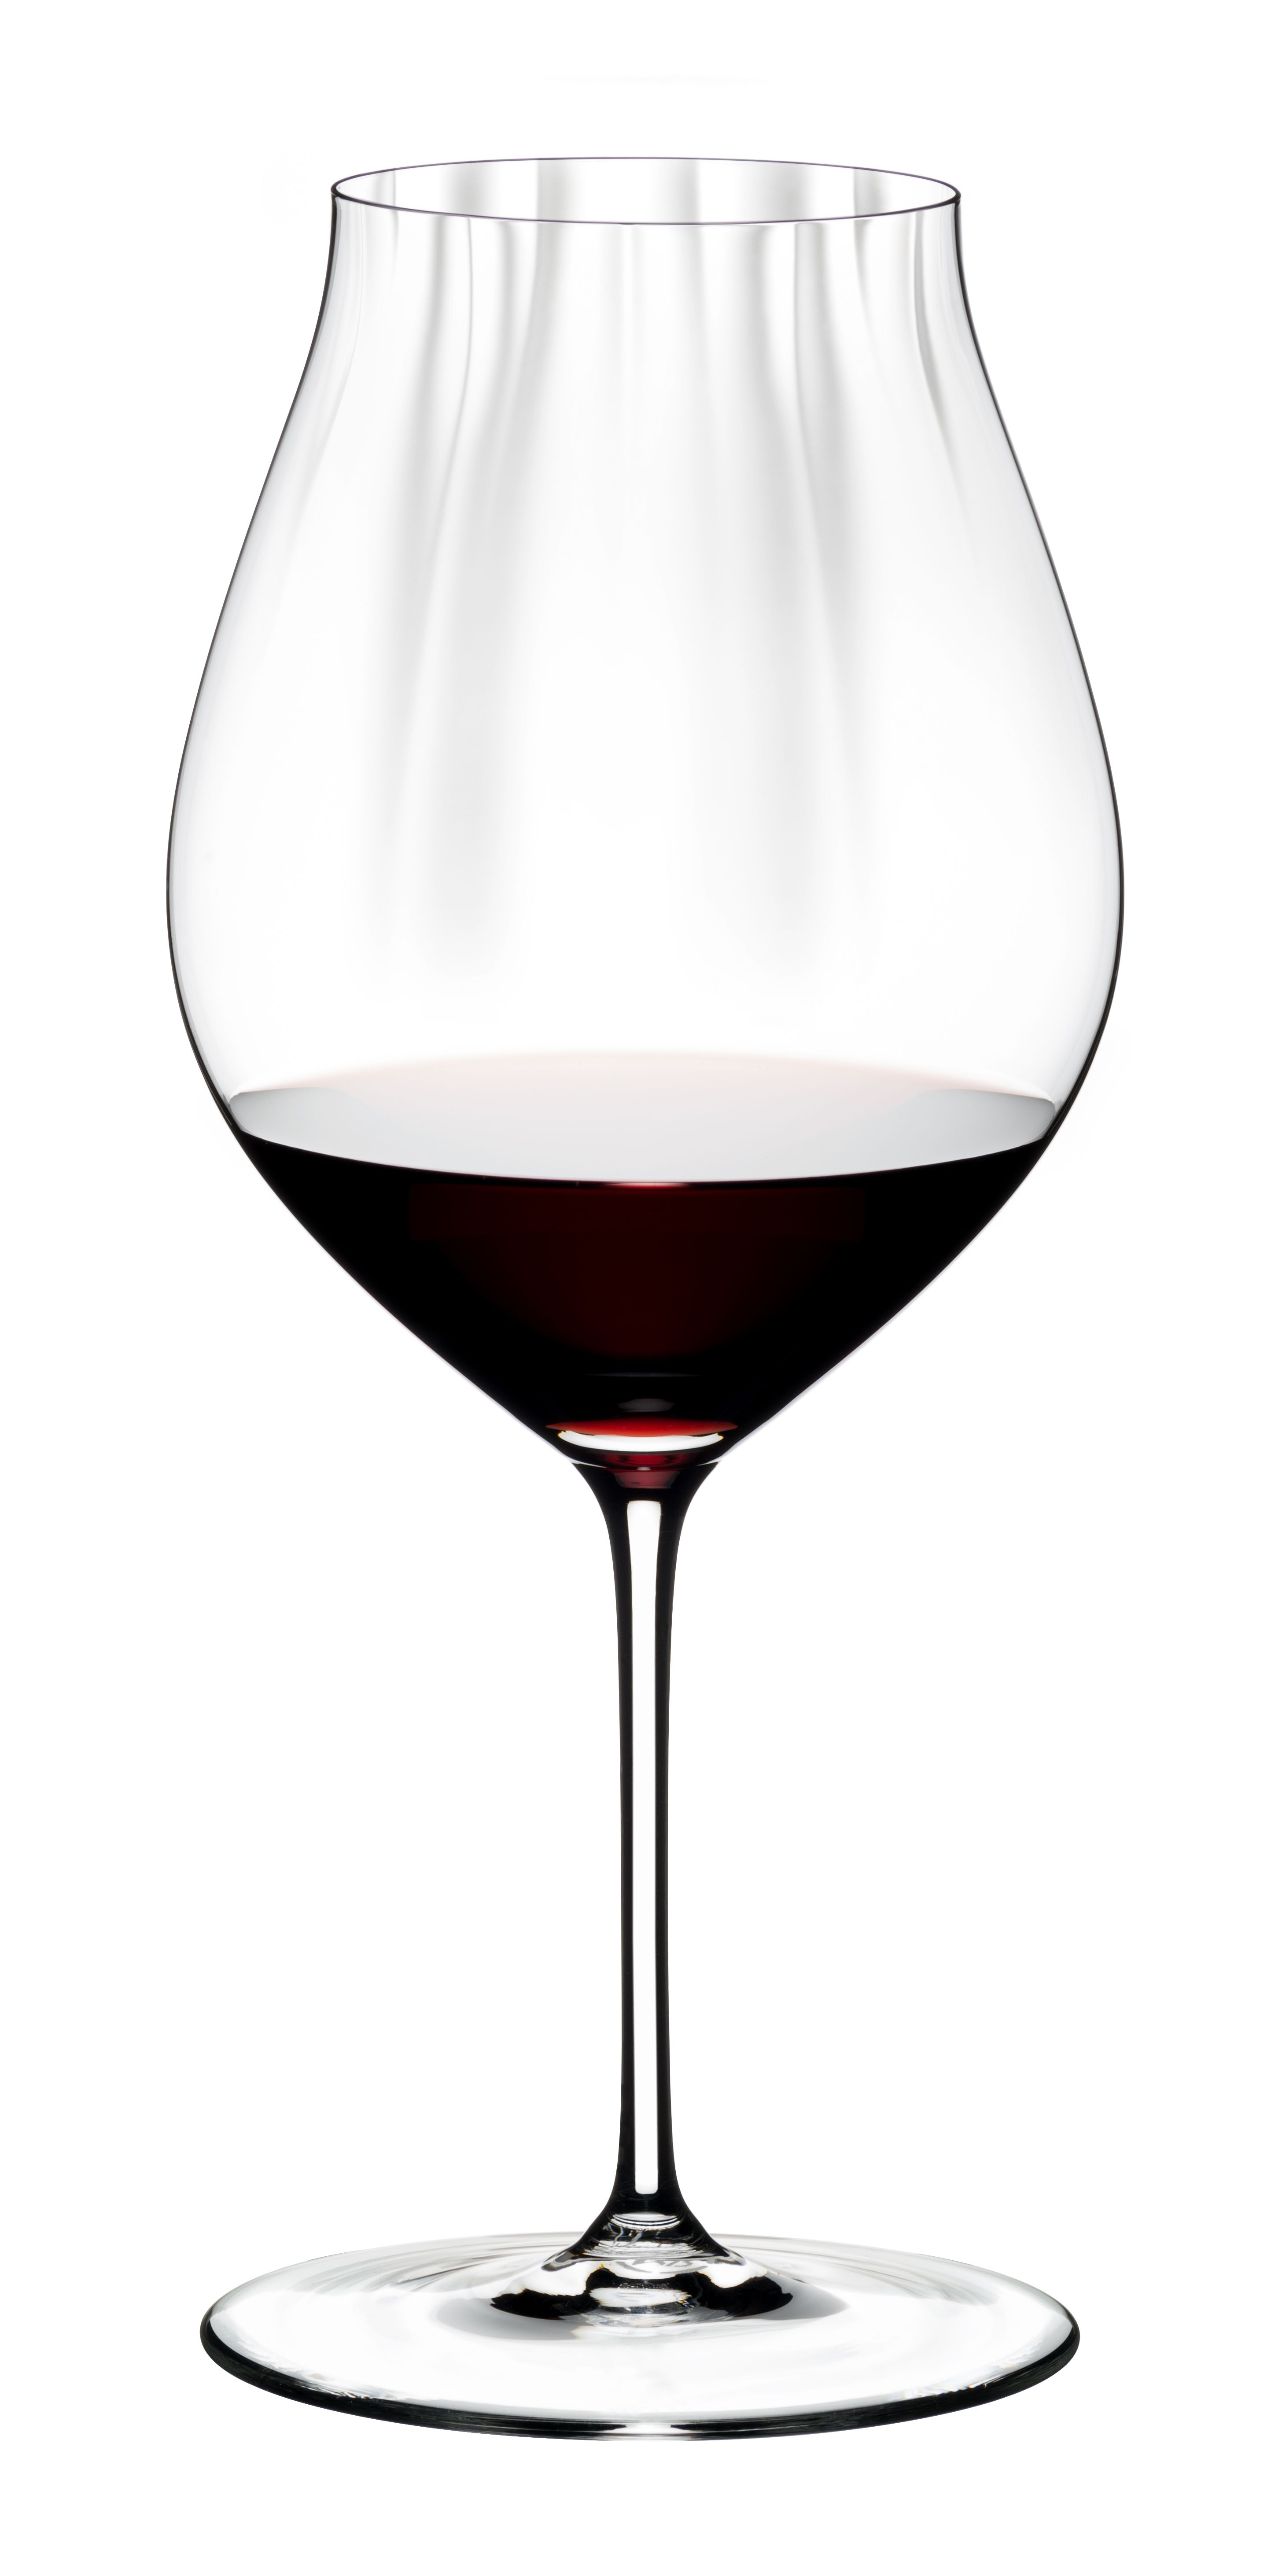 Riedel Performance Pinot Noir / Burgundy Wine Glasses (Set of 2)  Gift Product Image